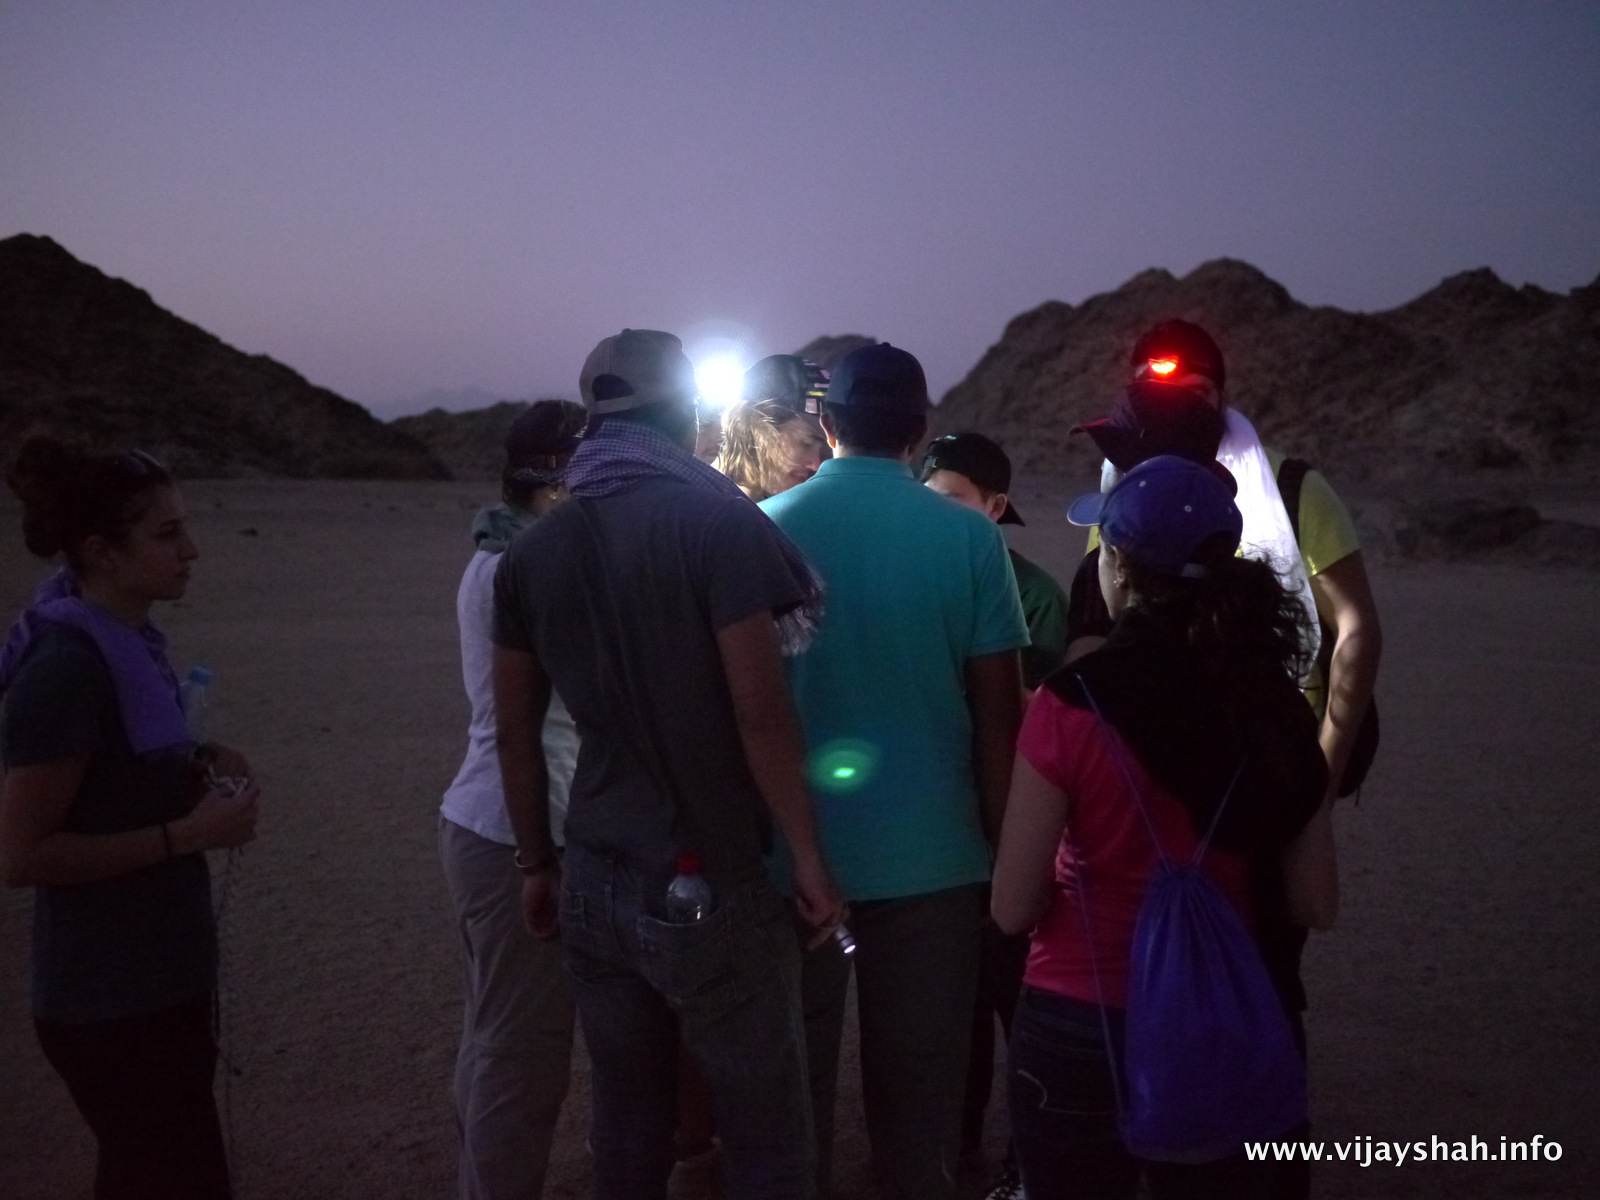 Night navigation in the desert